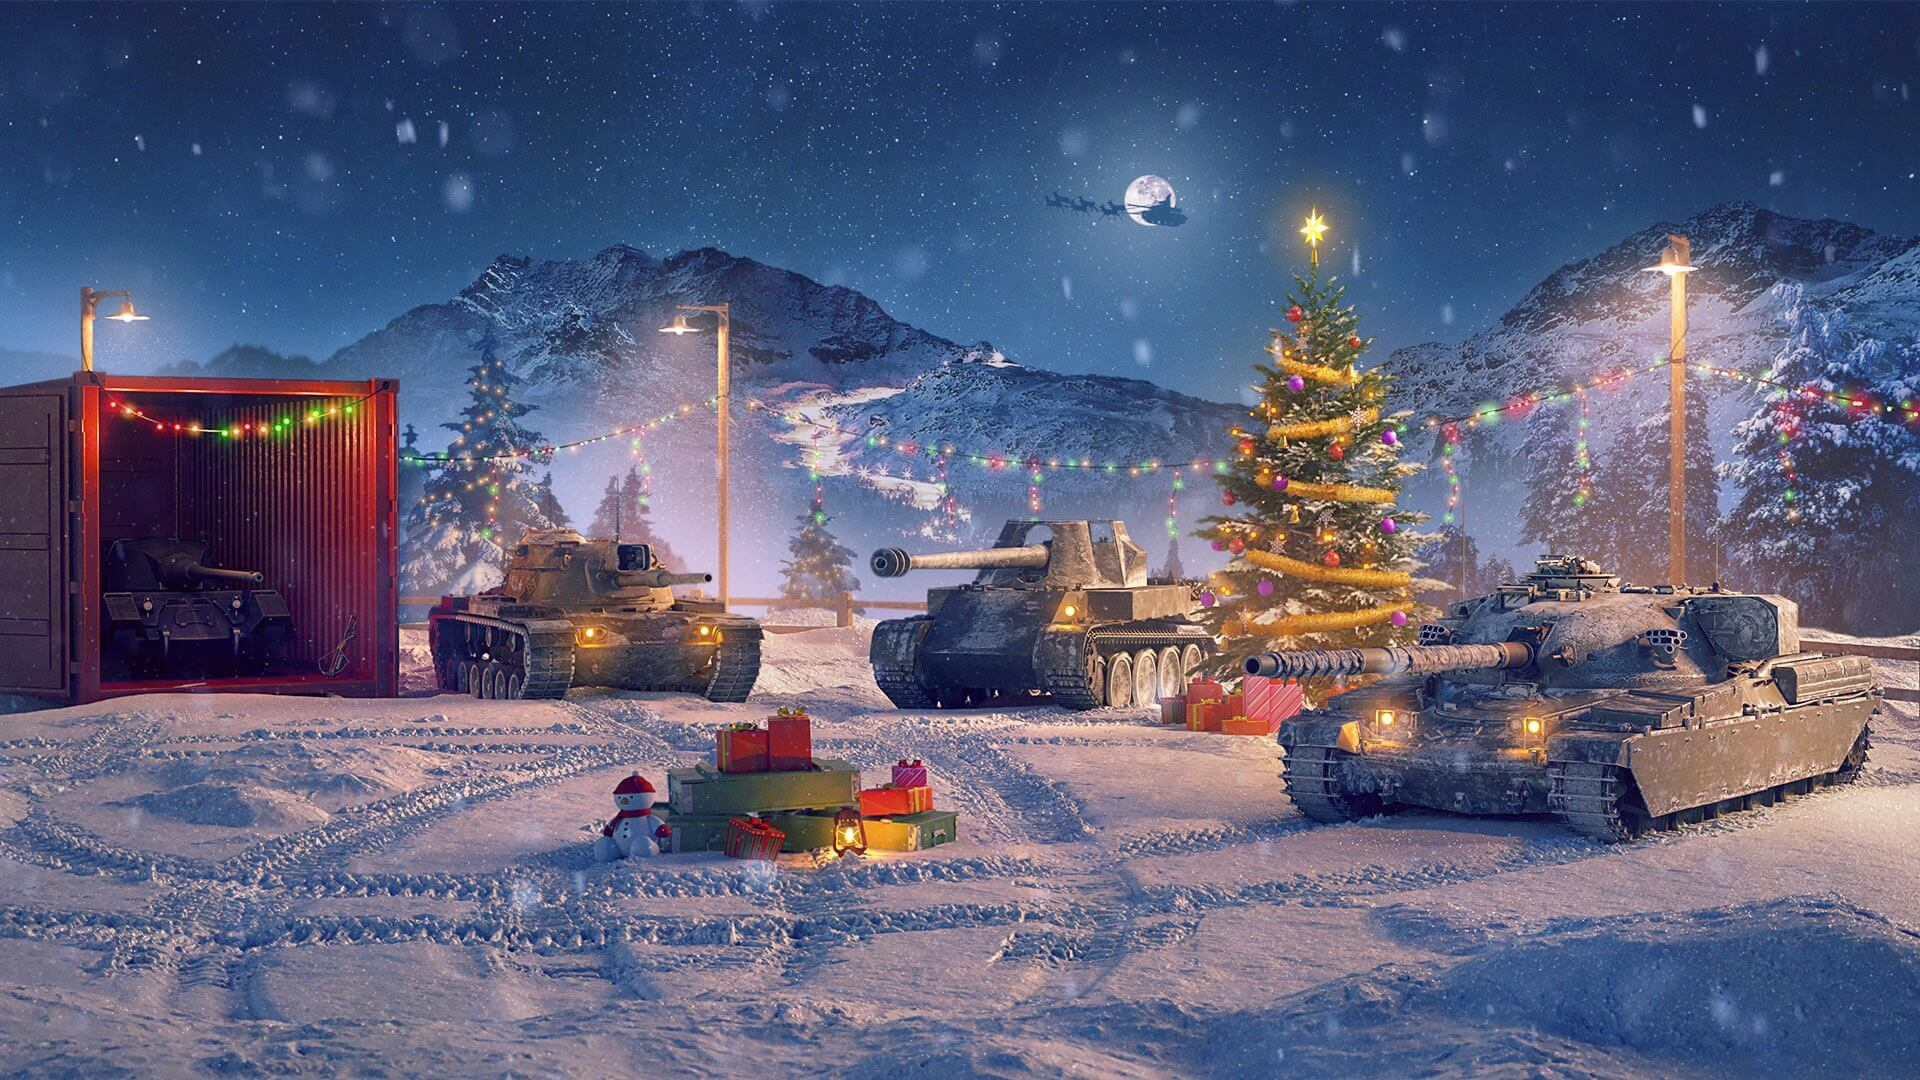 Wargaming World Of Tanks Christmas 2020 New Year's Adventure: Auction and Lucky Draw! | World of Tanks Blitz